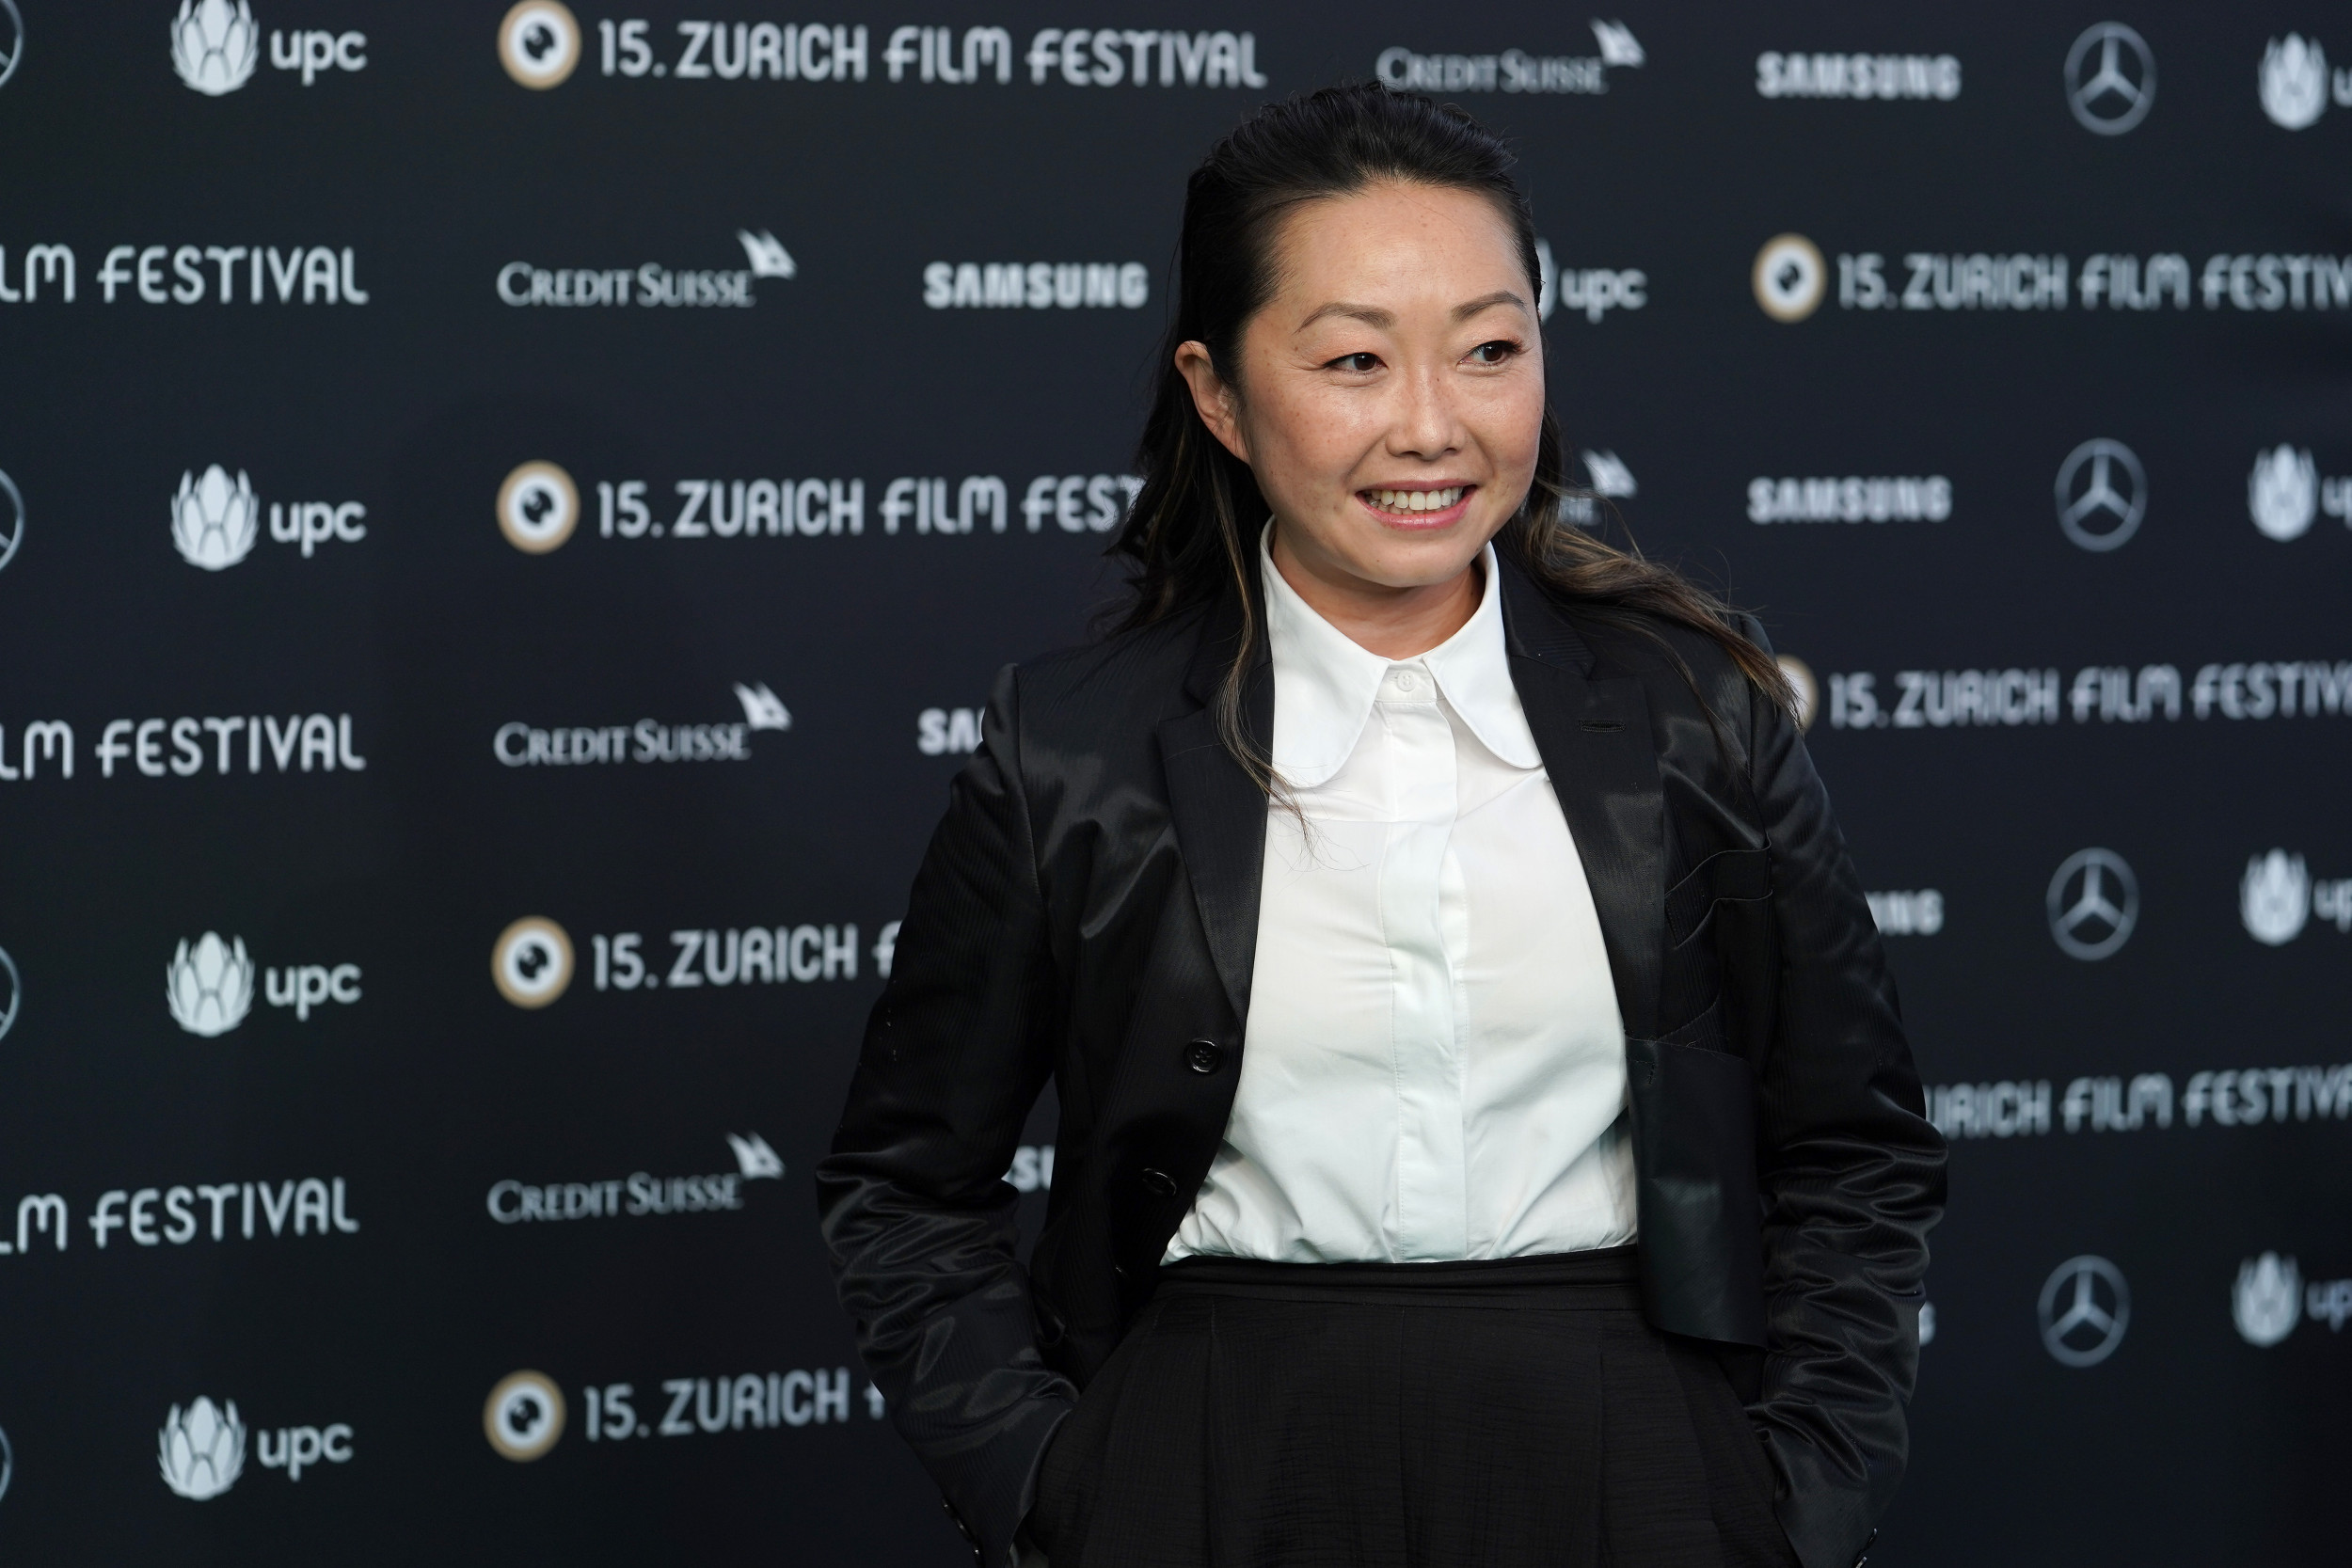 'The Farewell' Director Lulu Wang Surprises Lone Moviegoer With Q&A During Screening